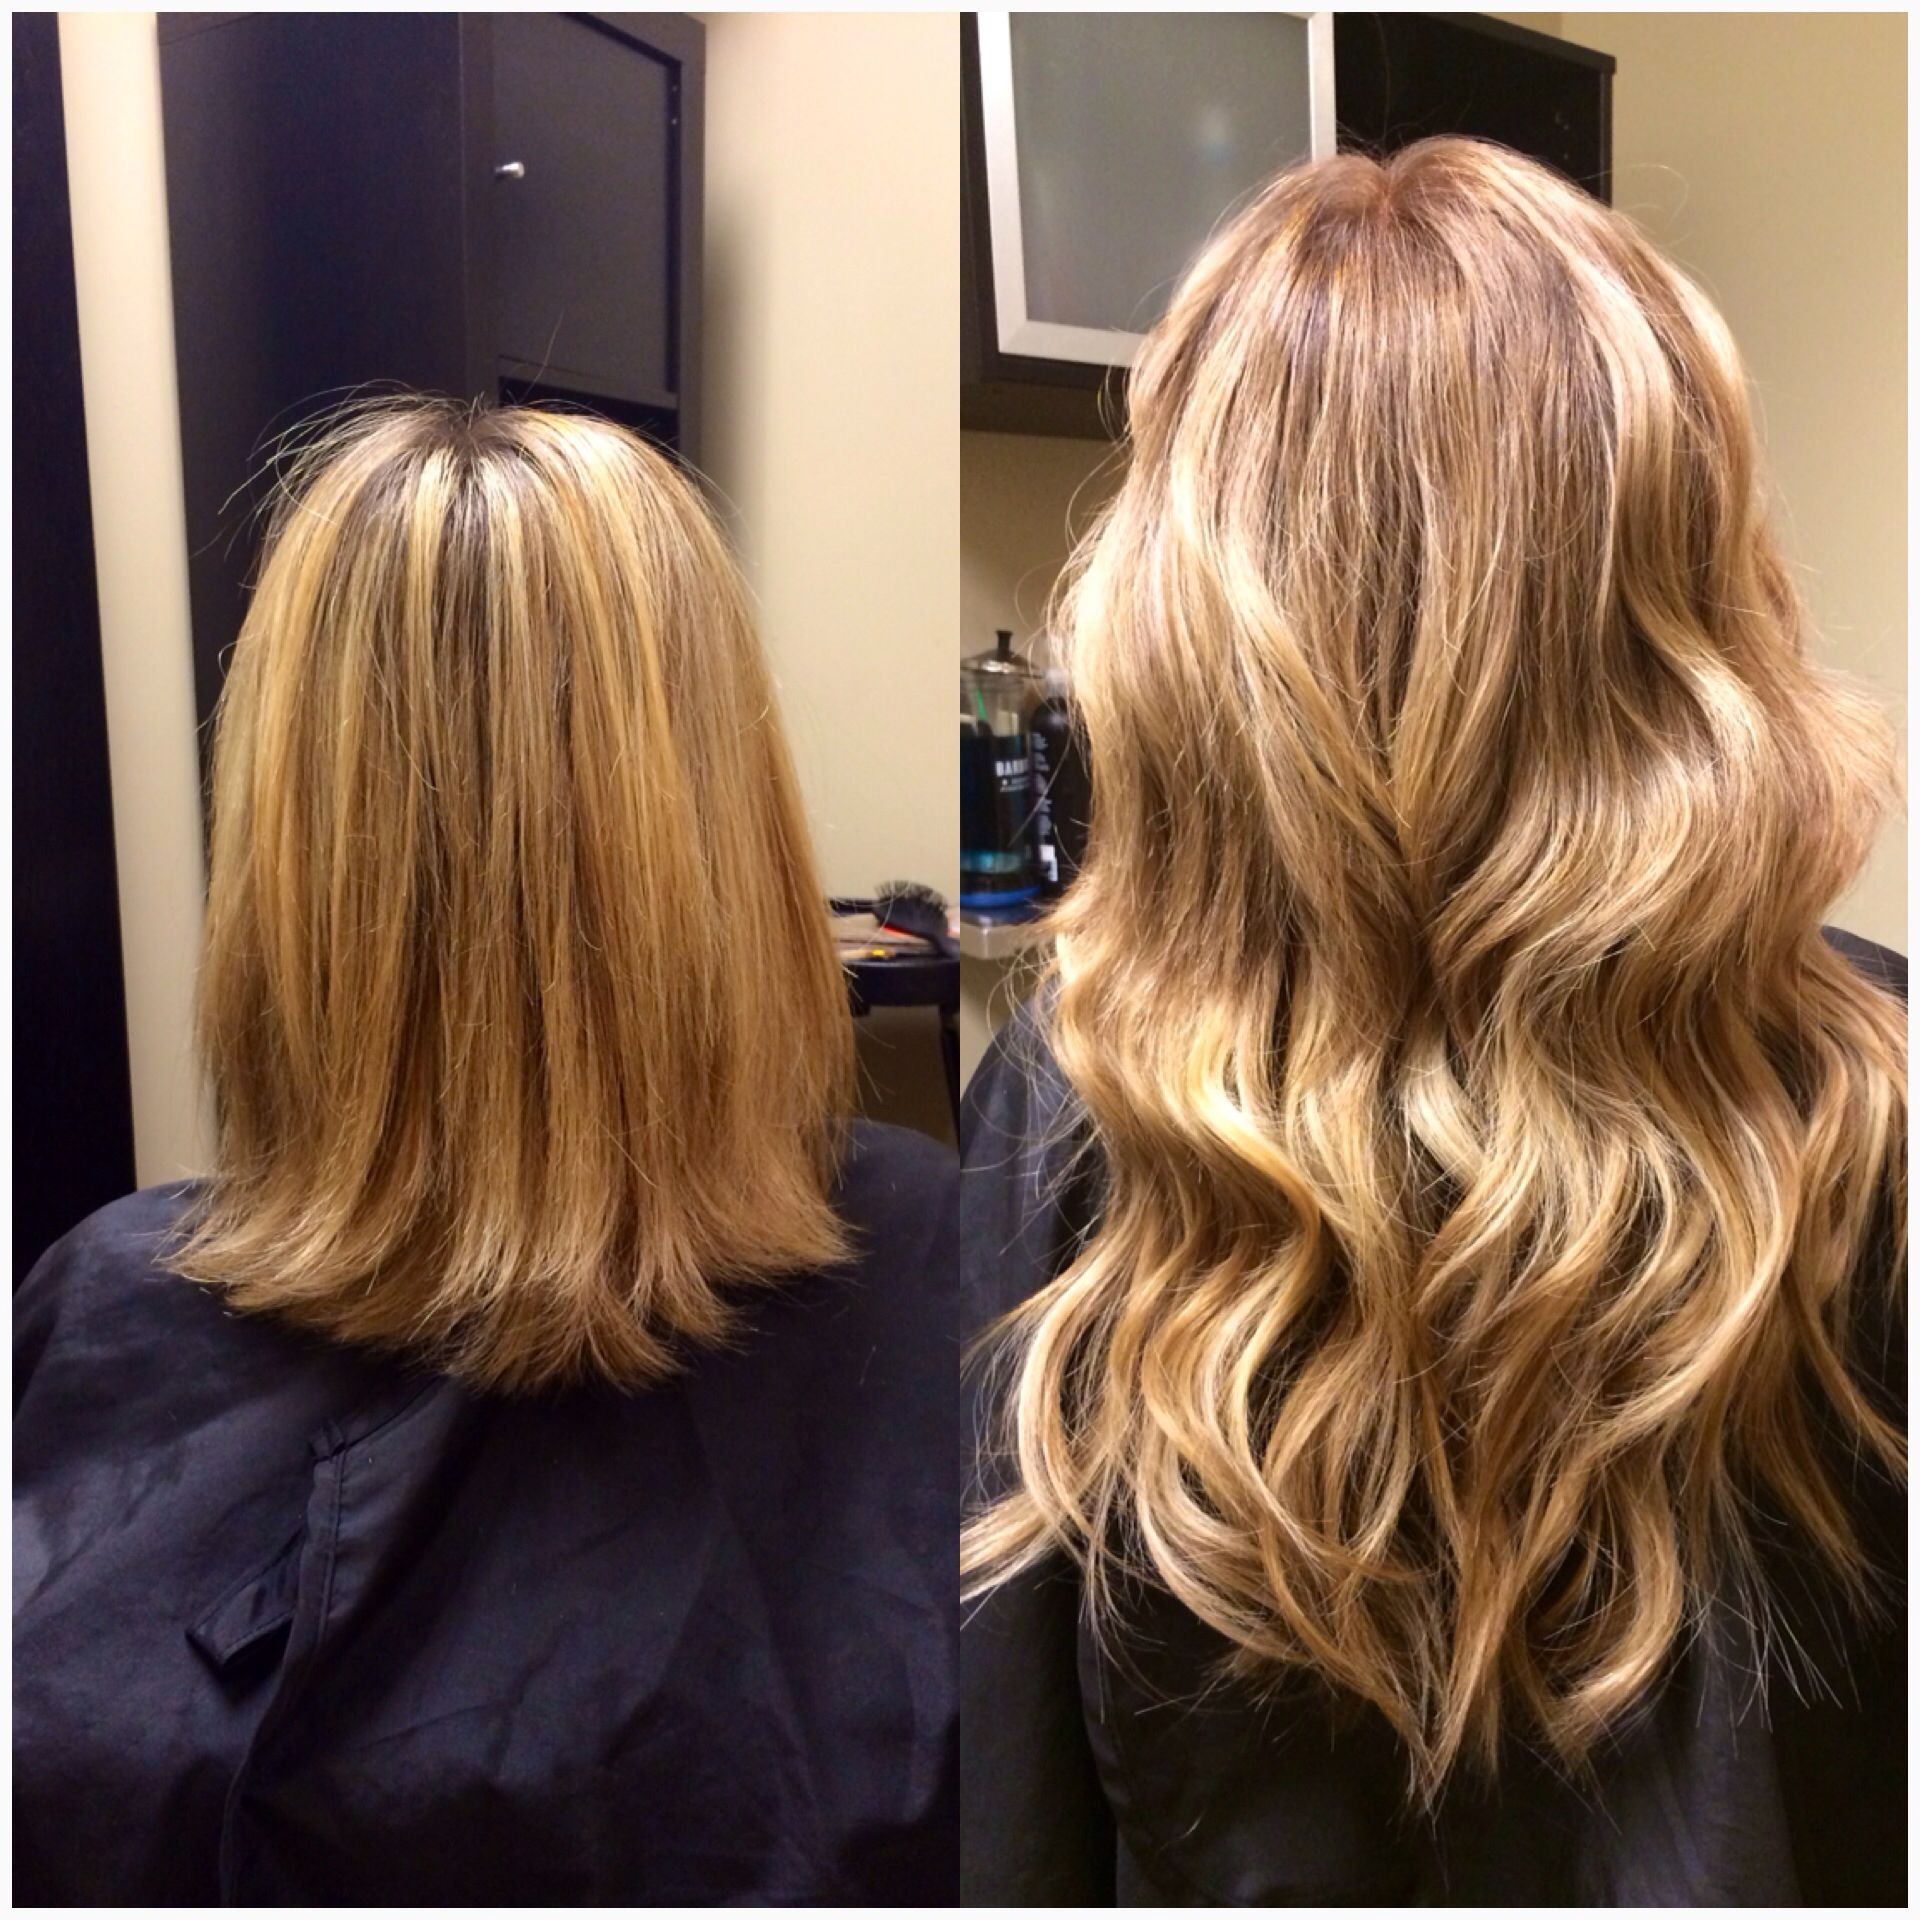 Hair extensions blonde before & after